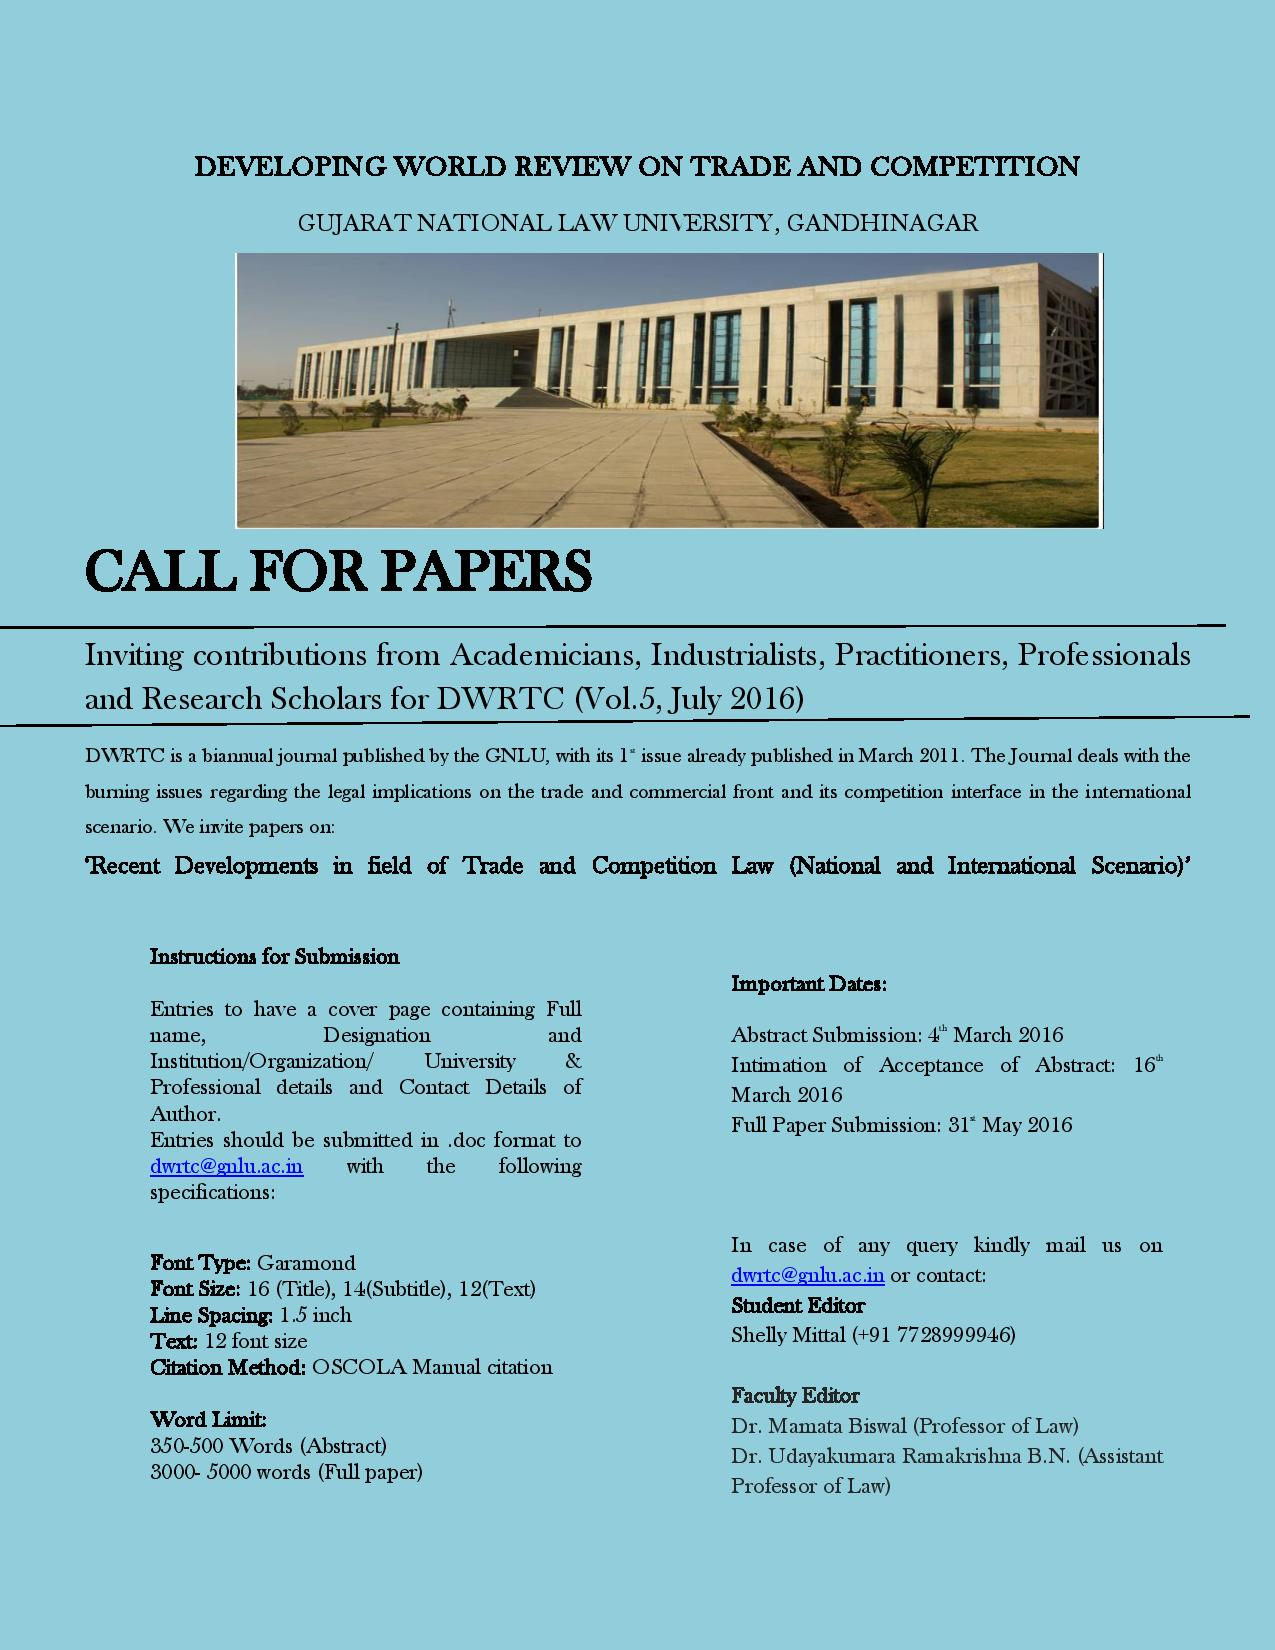 Call for Papers: Developing World Review on Trade and Competition